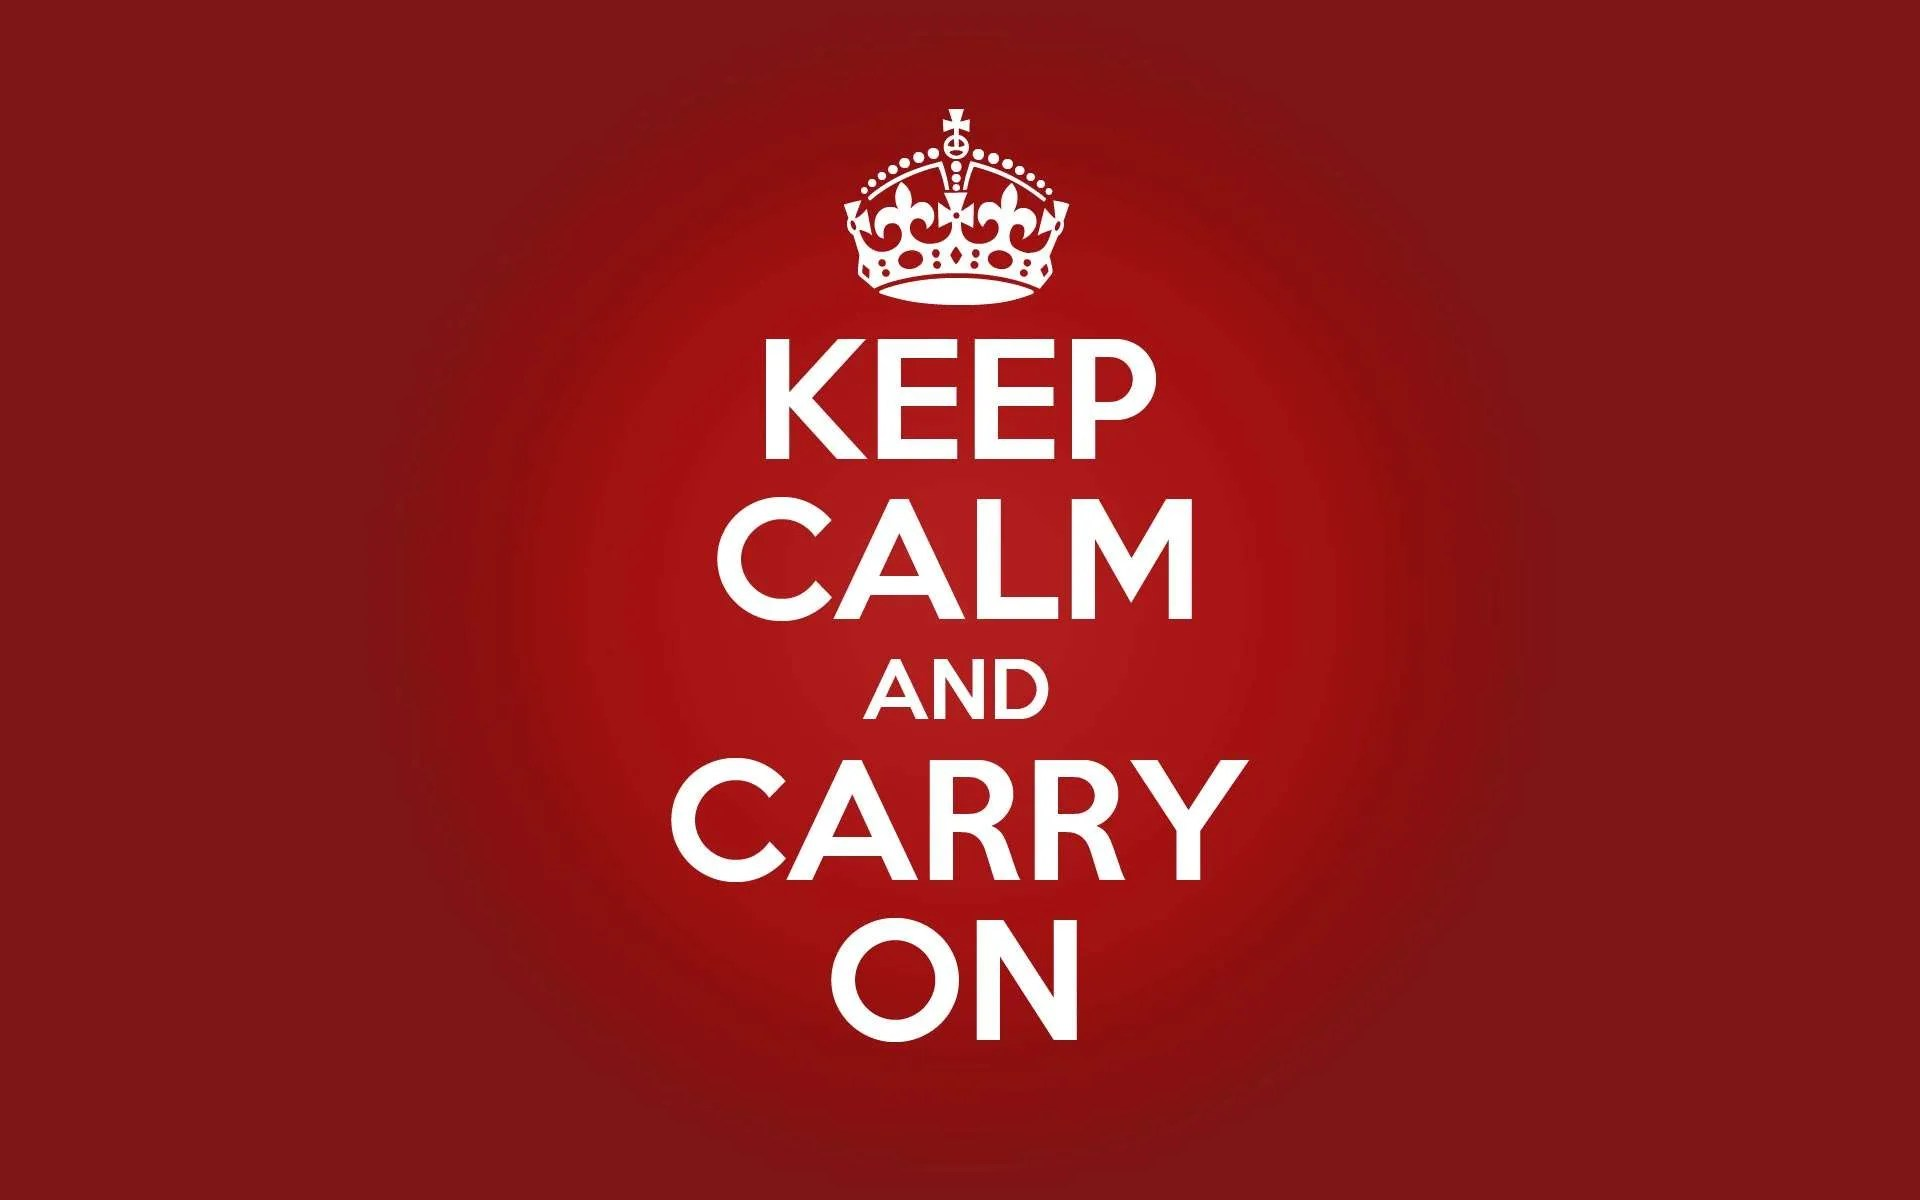 el imperativo en inglés keep calm and carry on